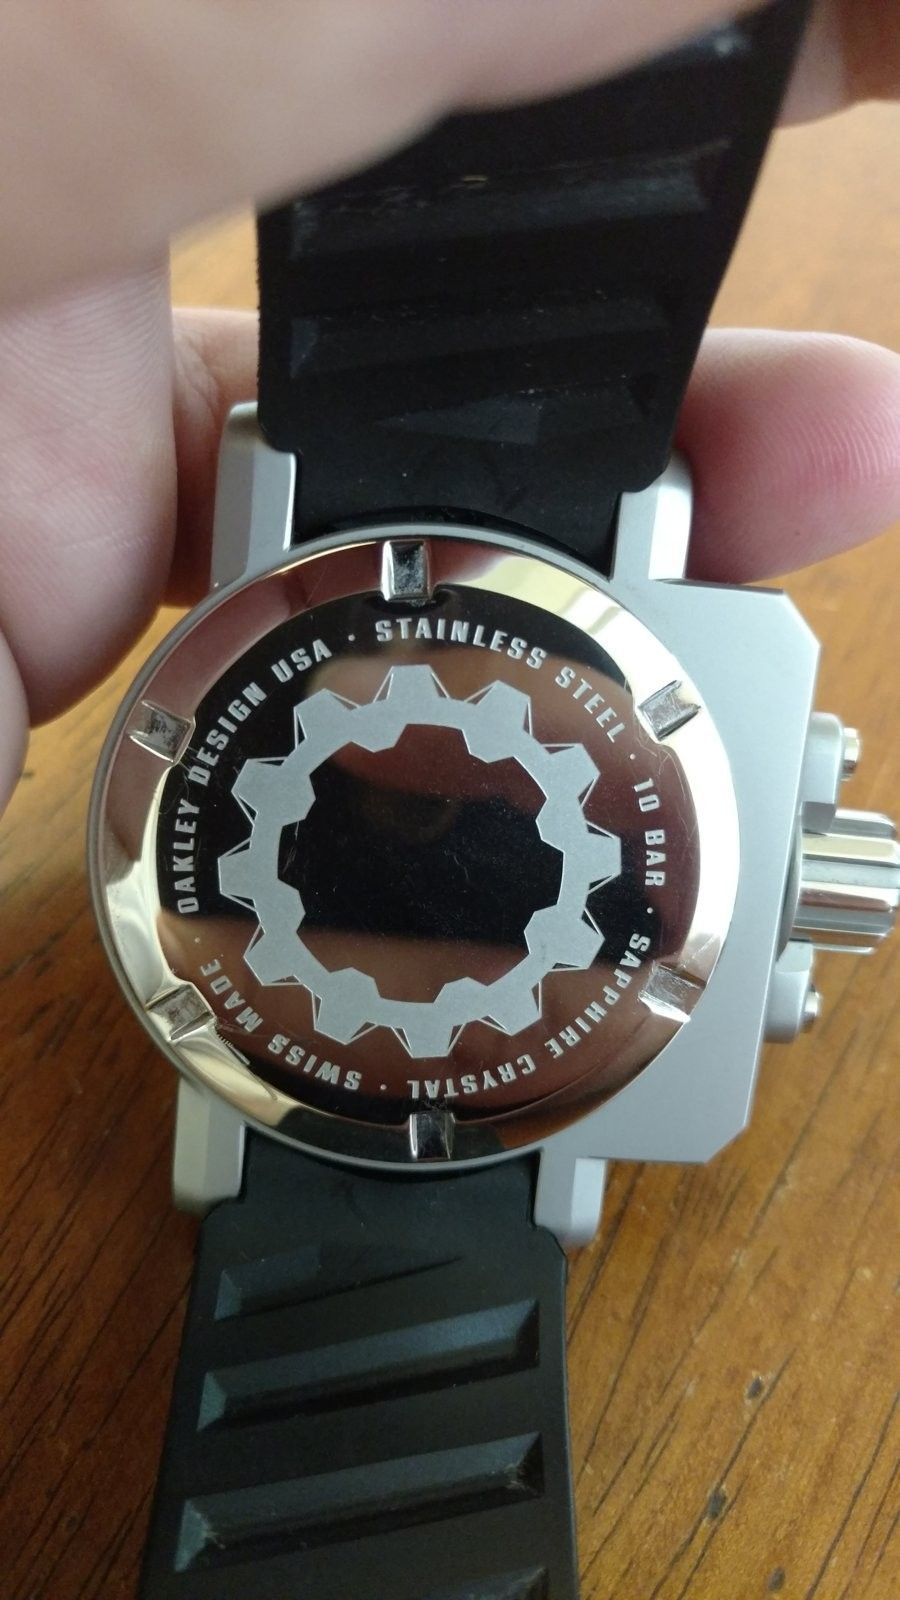 Gearbox Watch - IMG_20160627_102107770.jpg